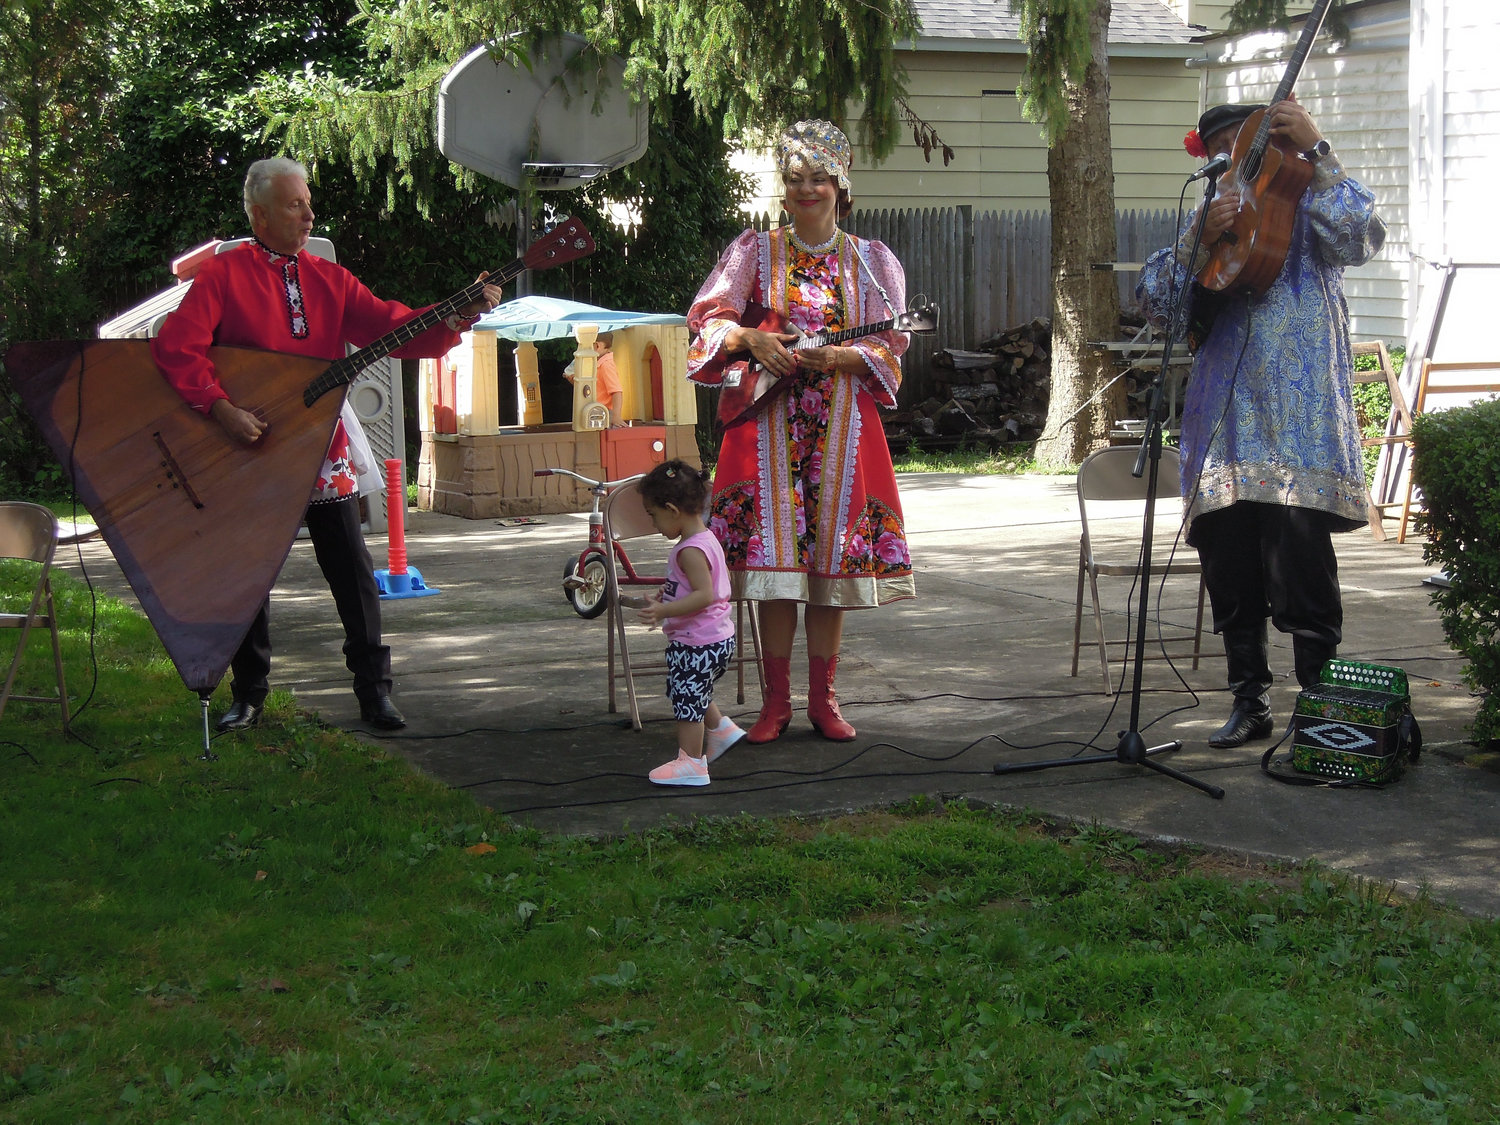 The Russian virtuoso group Baryna was joined by a member of the audience at Holy Trinity Orthodox Church's annual festival in East Meadow on Aug. 31.